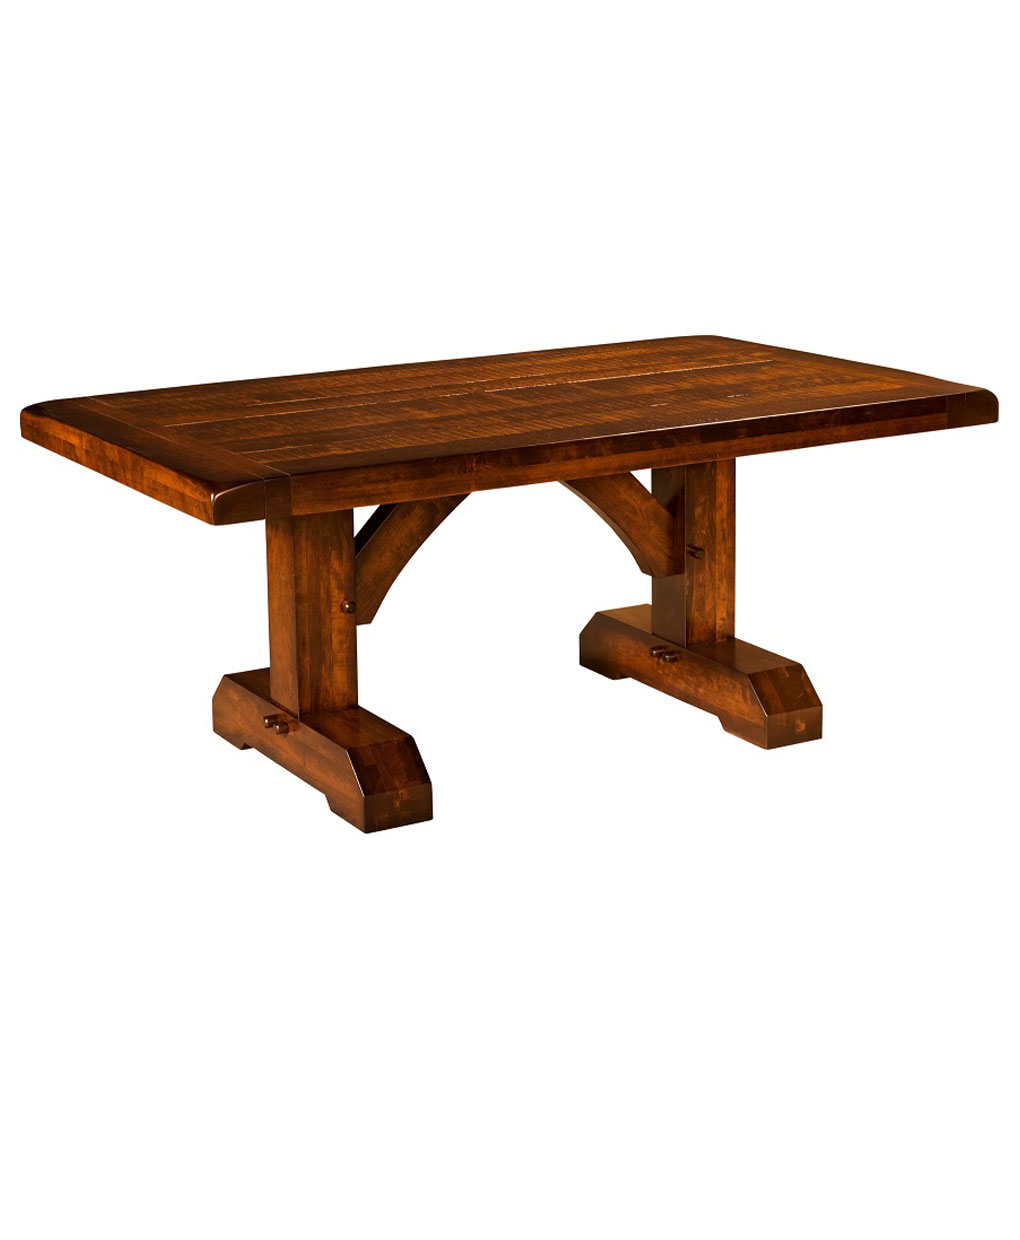 Poly Lumber Outdoor Furniture Leg Table Trestle Table Single Pedestal Double Pedestal Round Tables ...